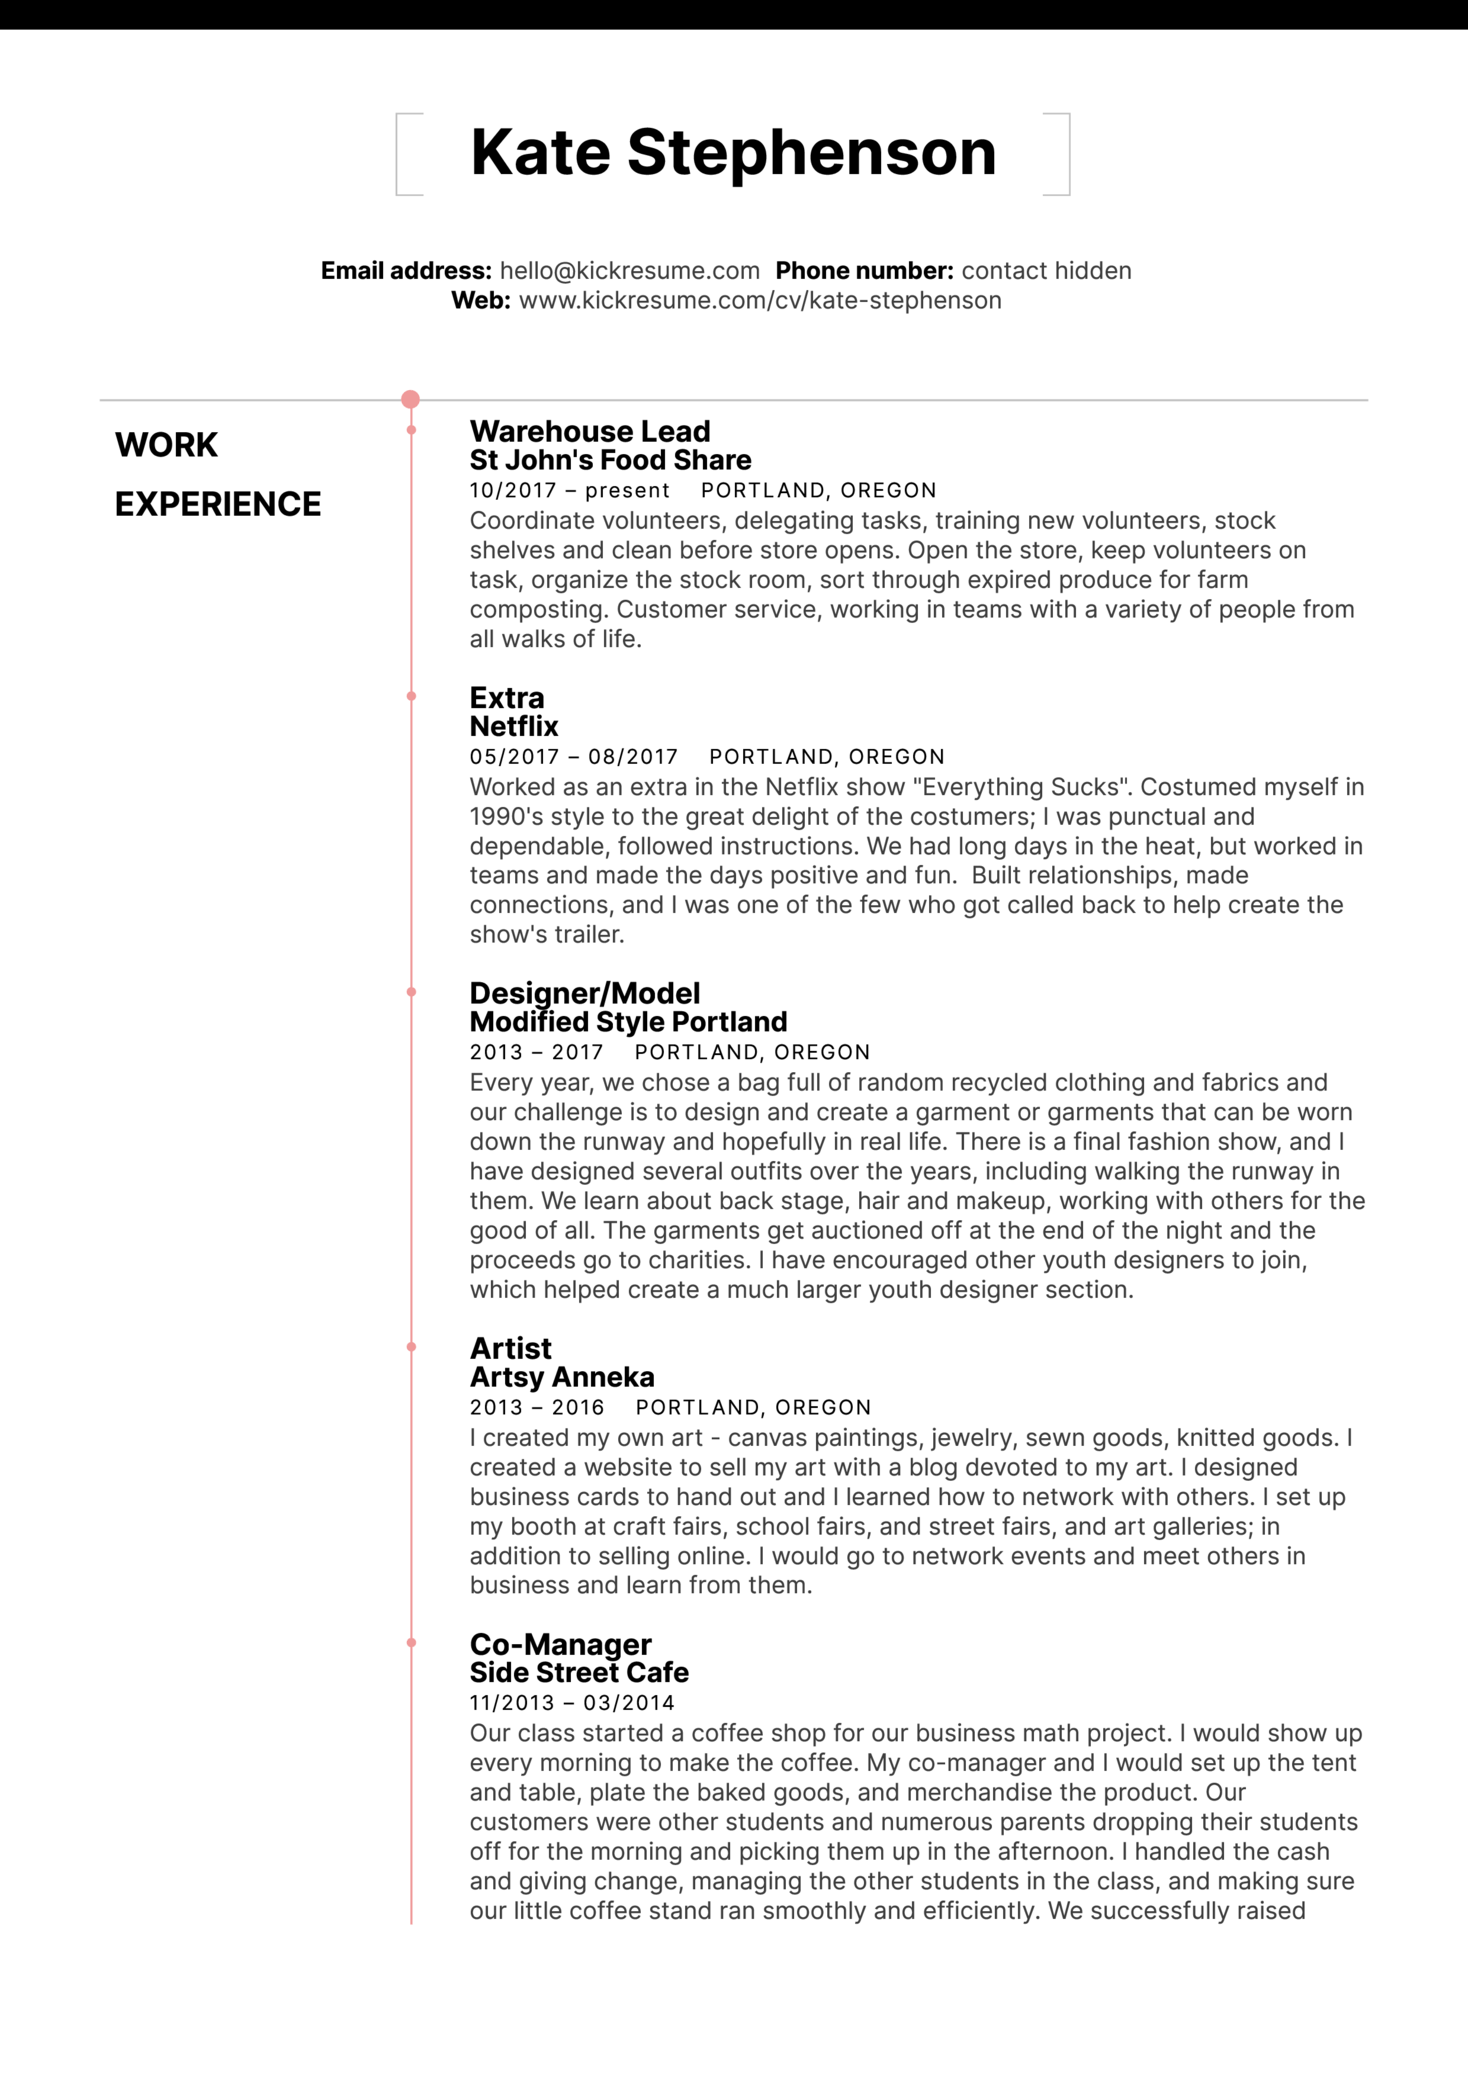 Starbucks Barista Resume Sample (Part 1)